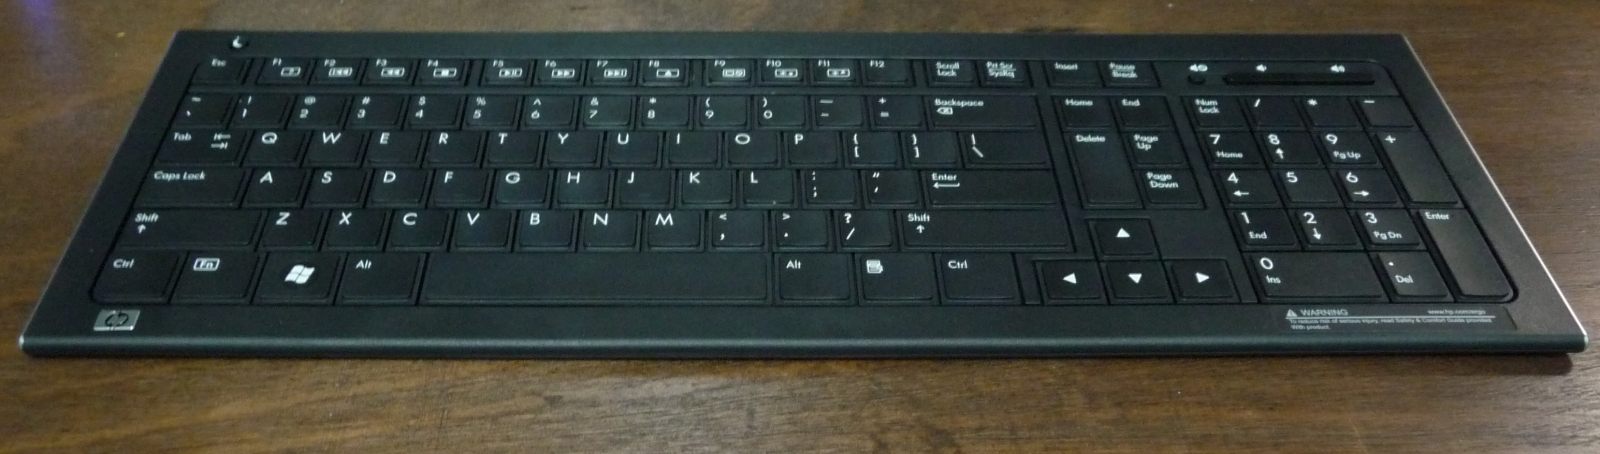 cd196e32041 HP Wireless Elite Keyboard Review (Updated) | MASHEROS